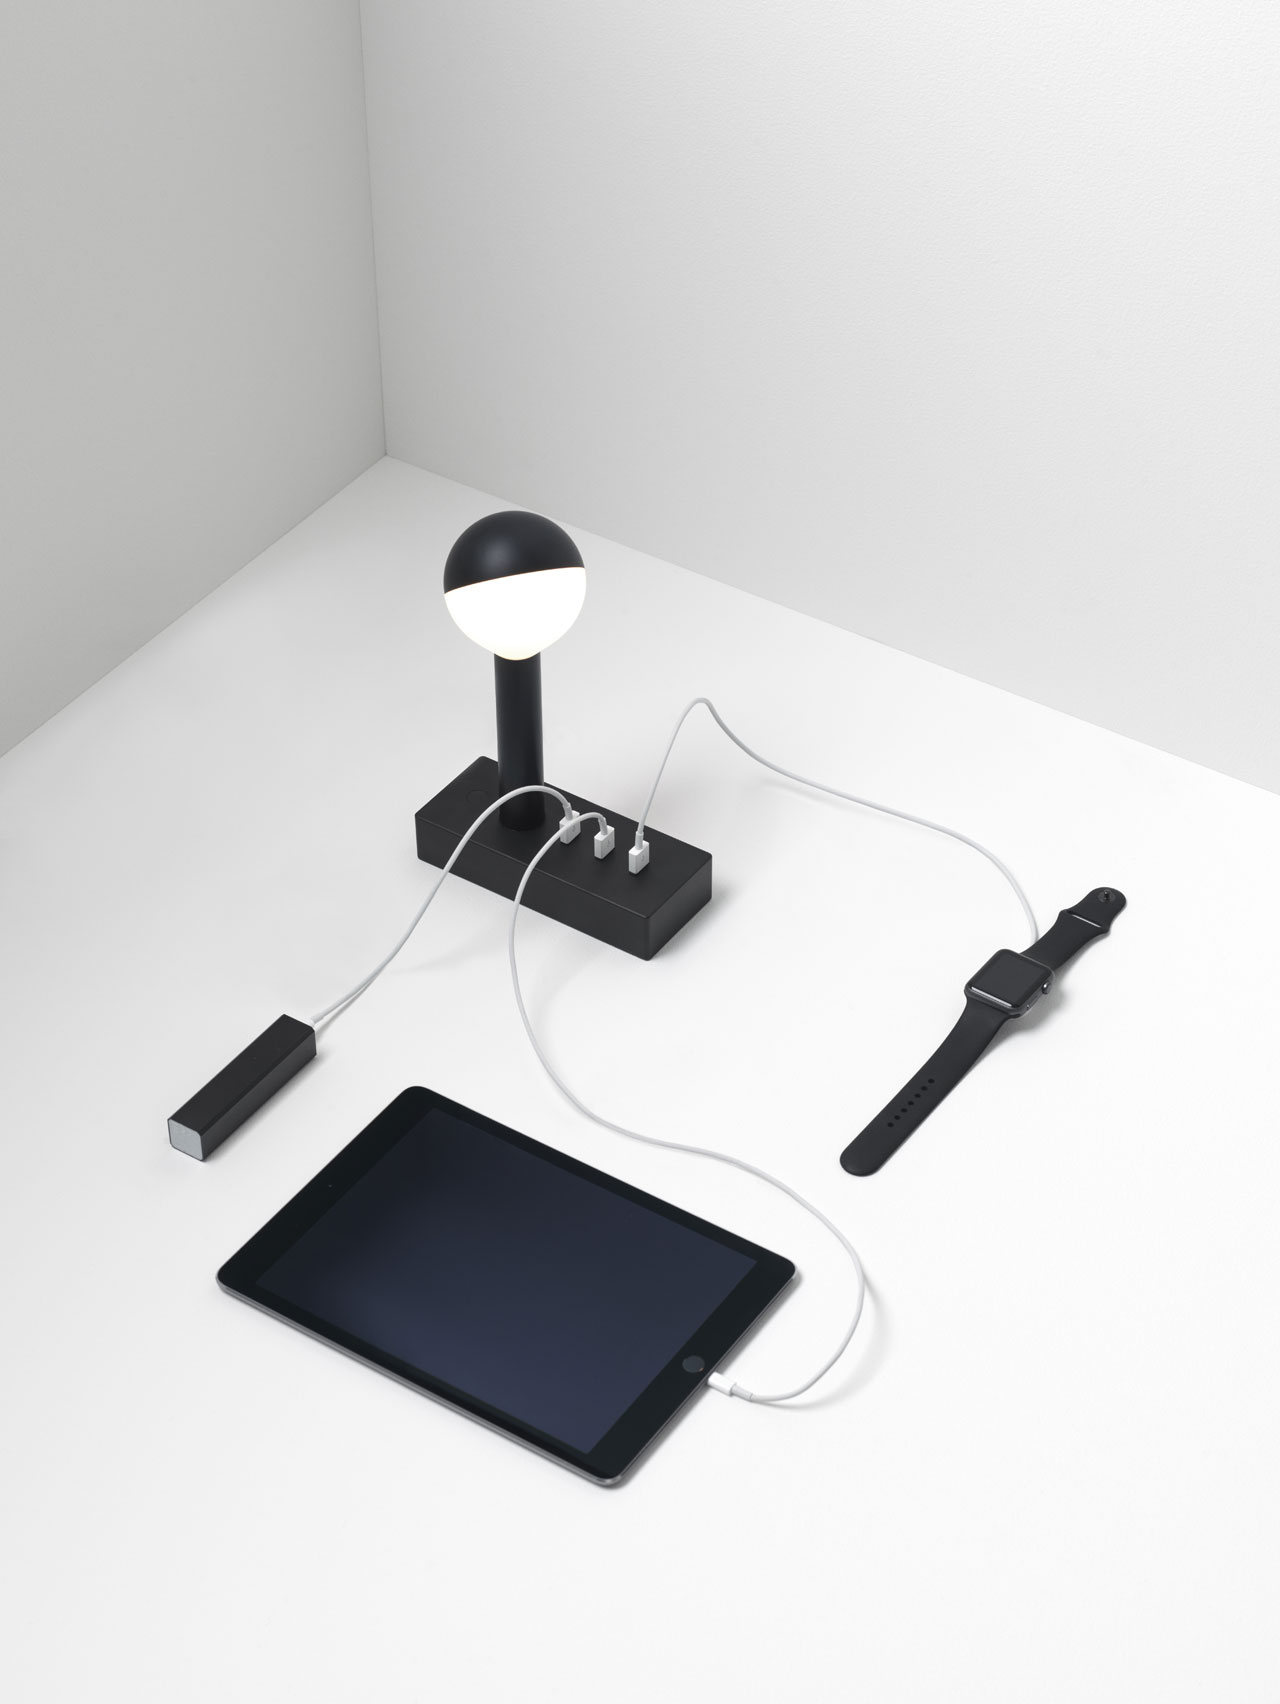 """""""The w152 Busby lamp is an electronic lamp that provides intelligent, universal power from three USB outlets, detecting charging requirements and managing them at their fastest rate.""""Wästberg in collabopration with Industrial Facility."""